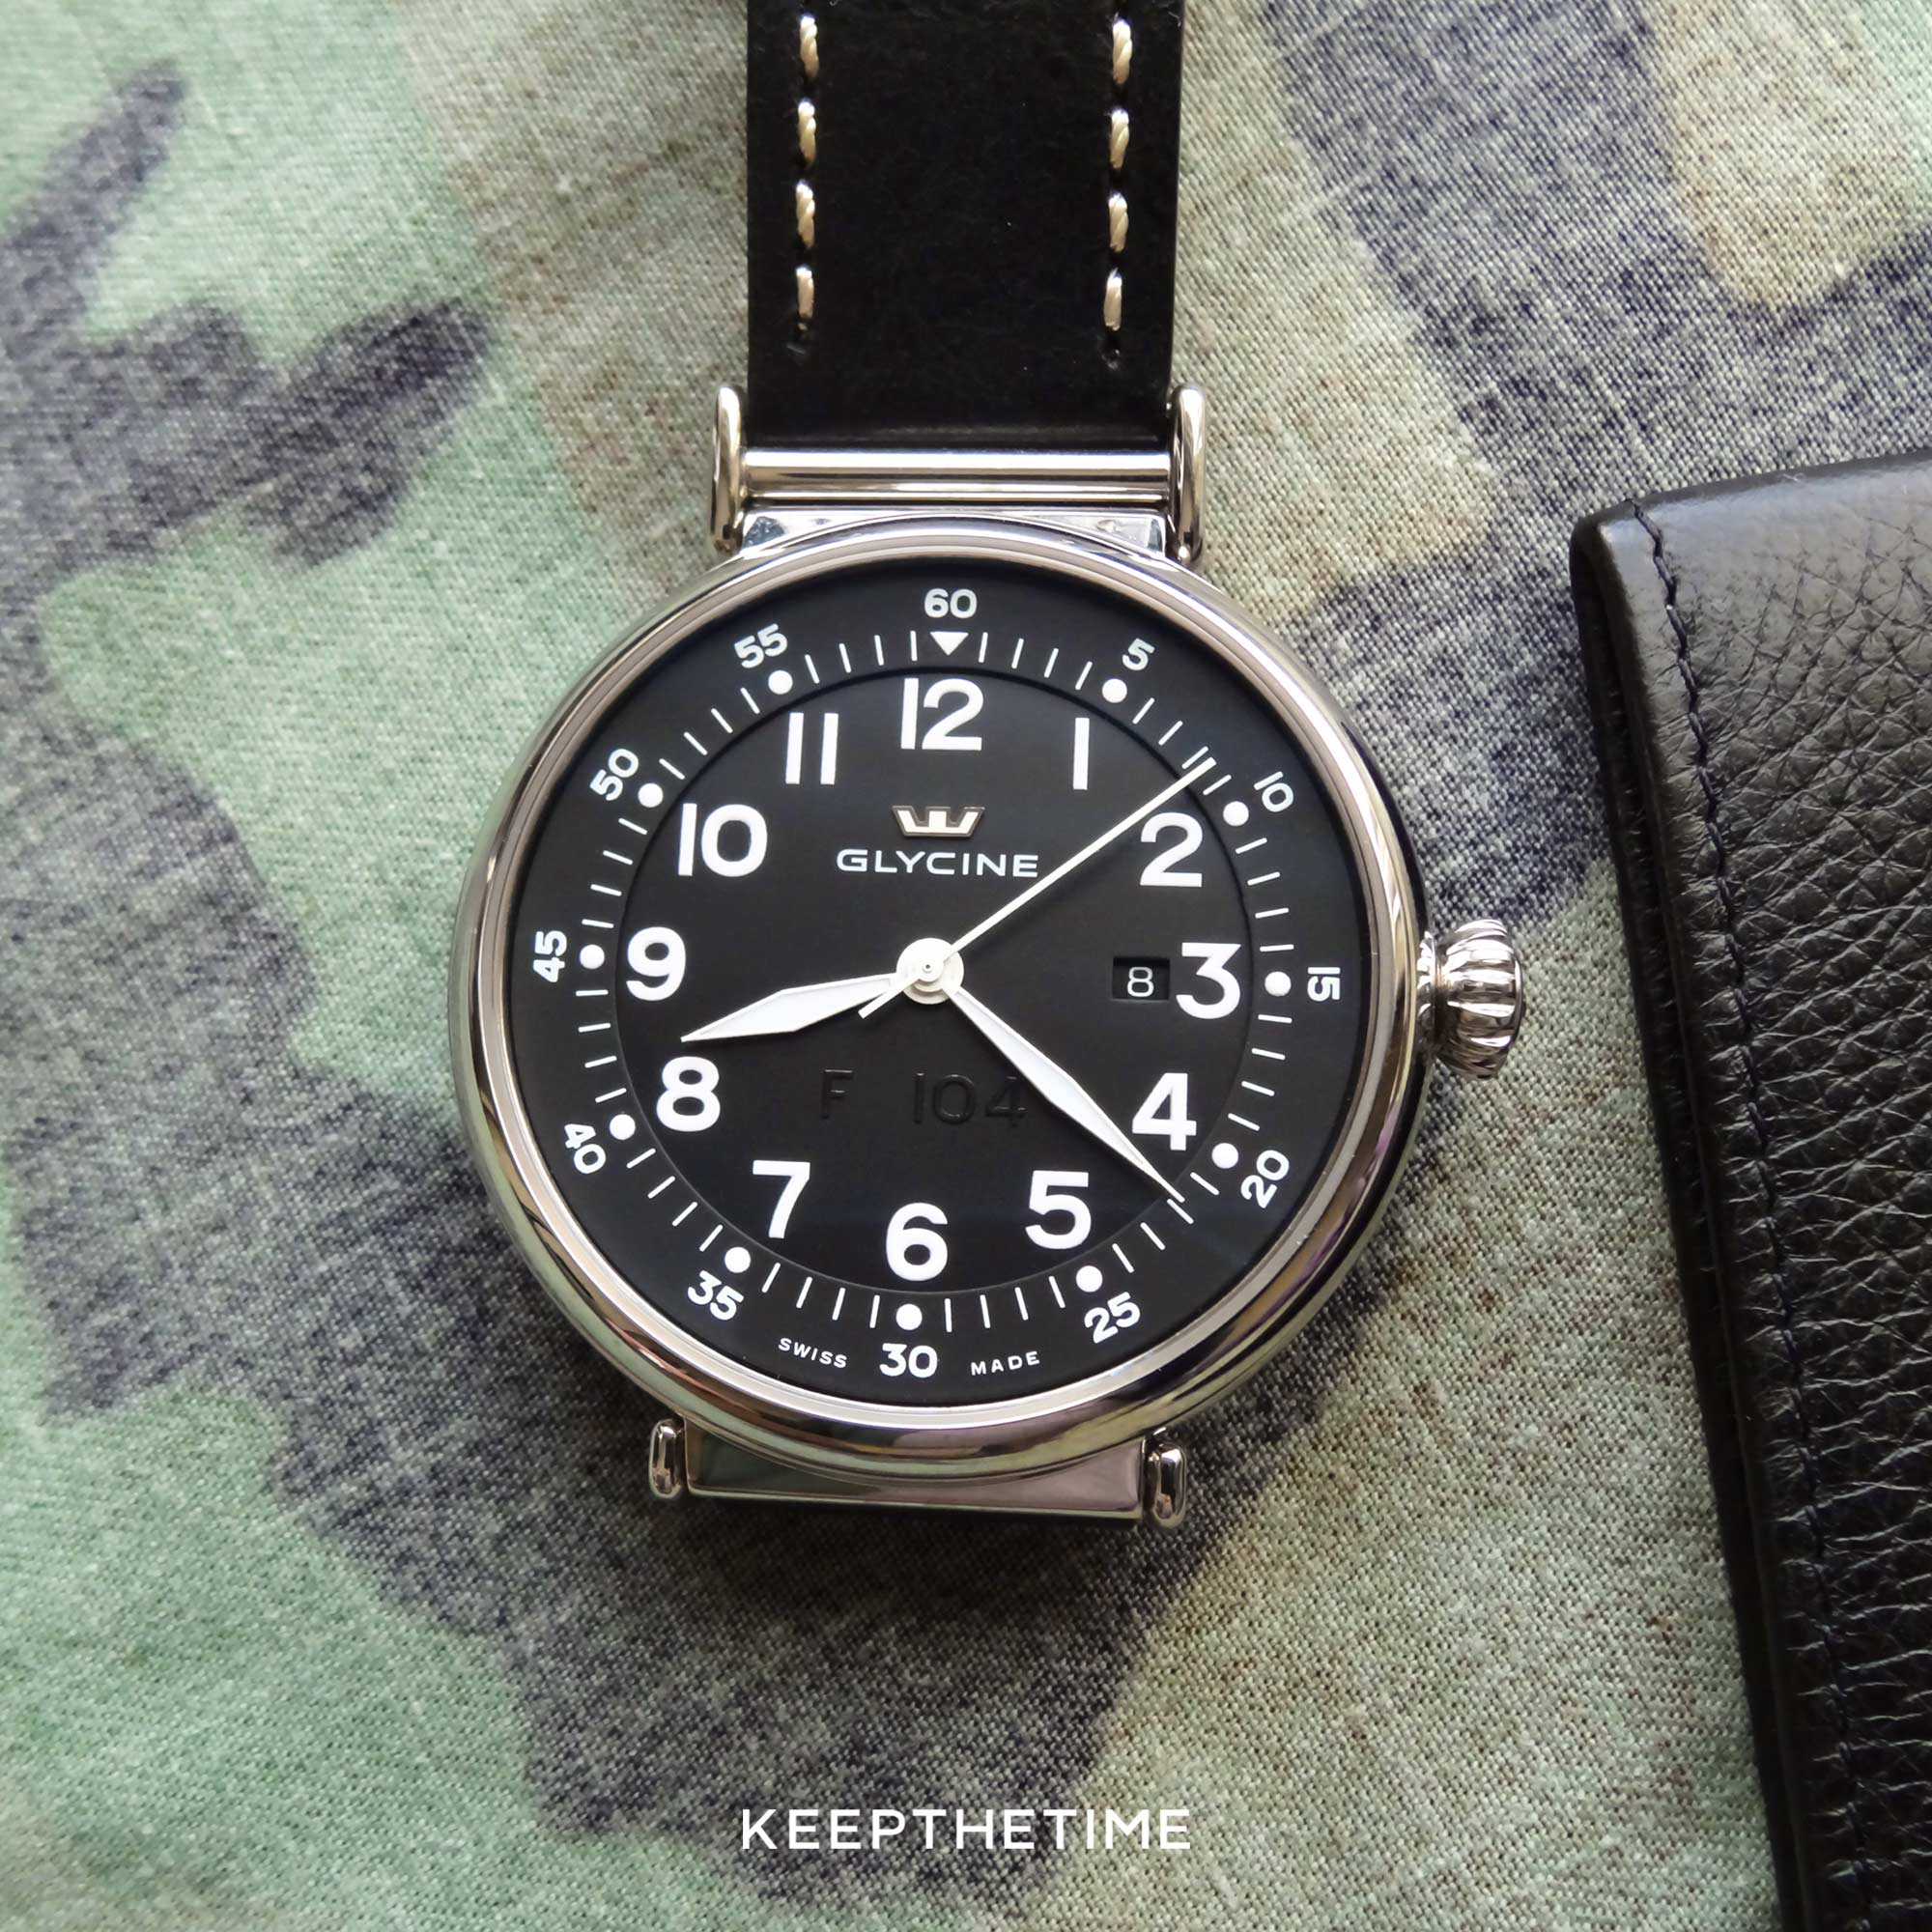 Glycine F 104 Automatic Ultra Legible 48mm On A Black Leather Strap